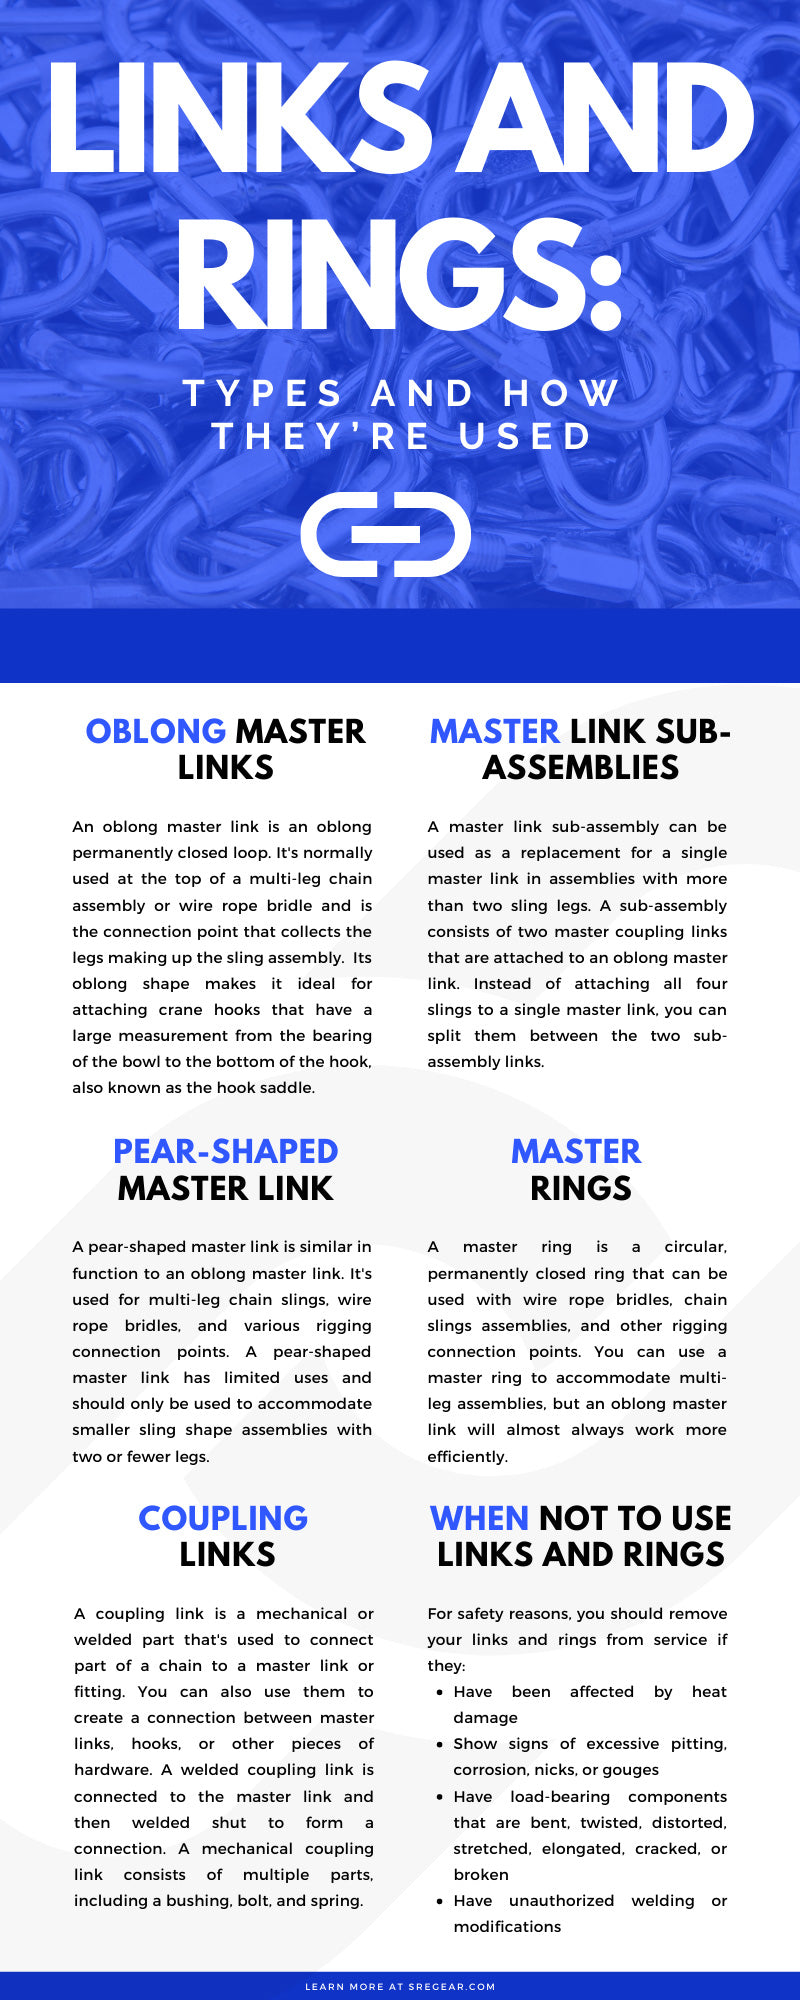 Links and Rings: Types and How They're Used